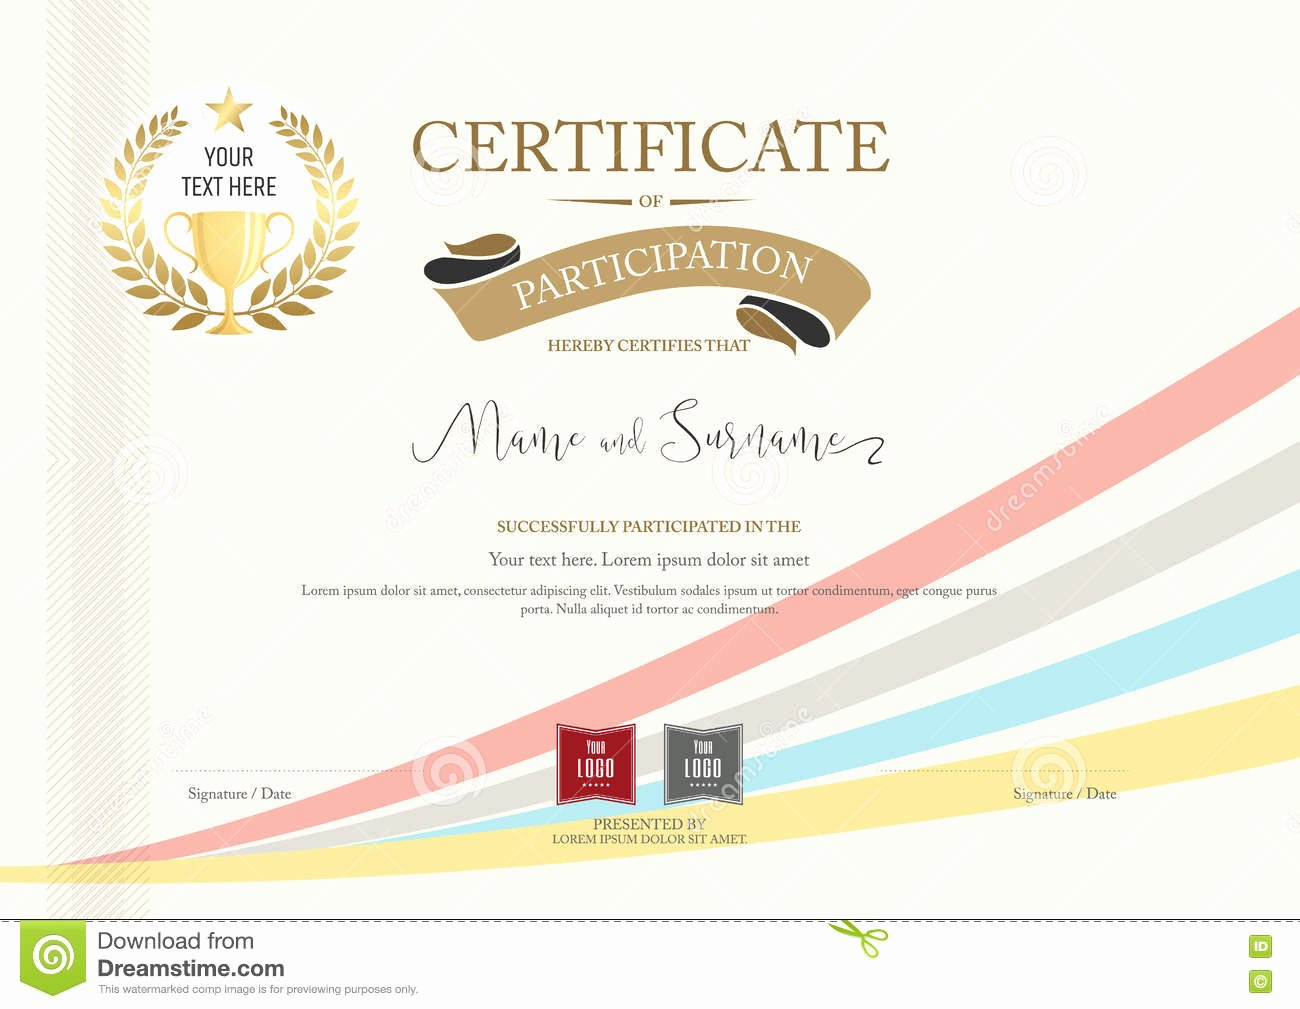 Certificate Of Participation Design Unique Certificate Participation Template with Golden Award